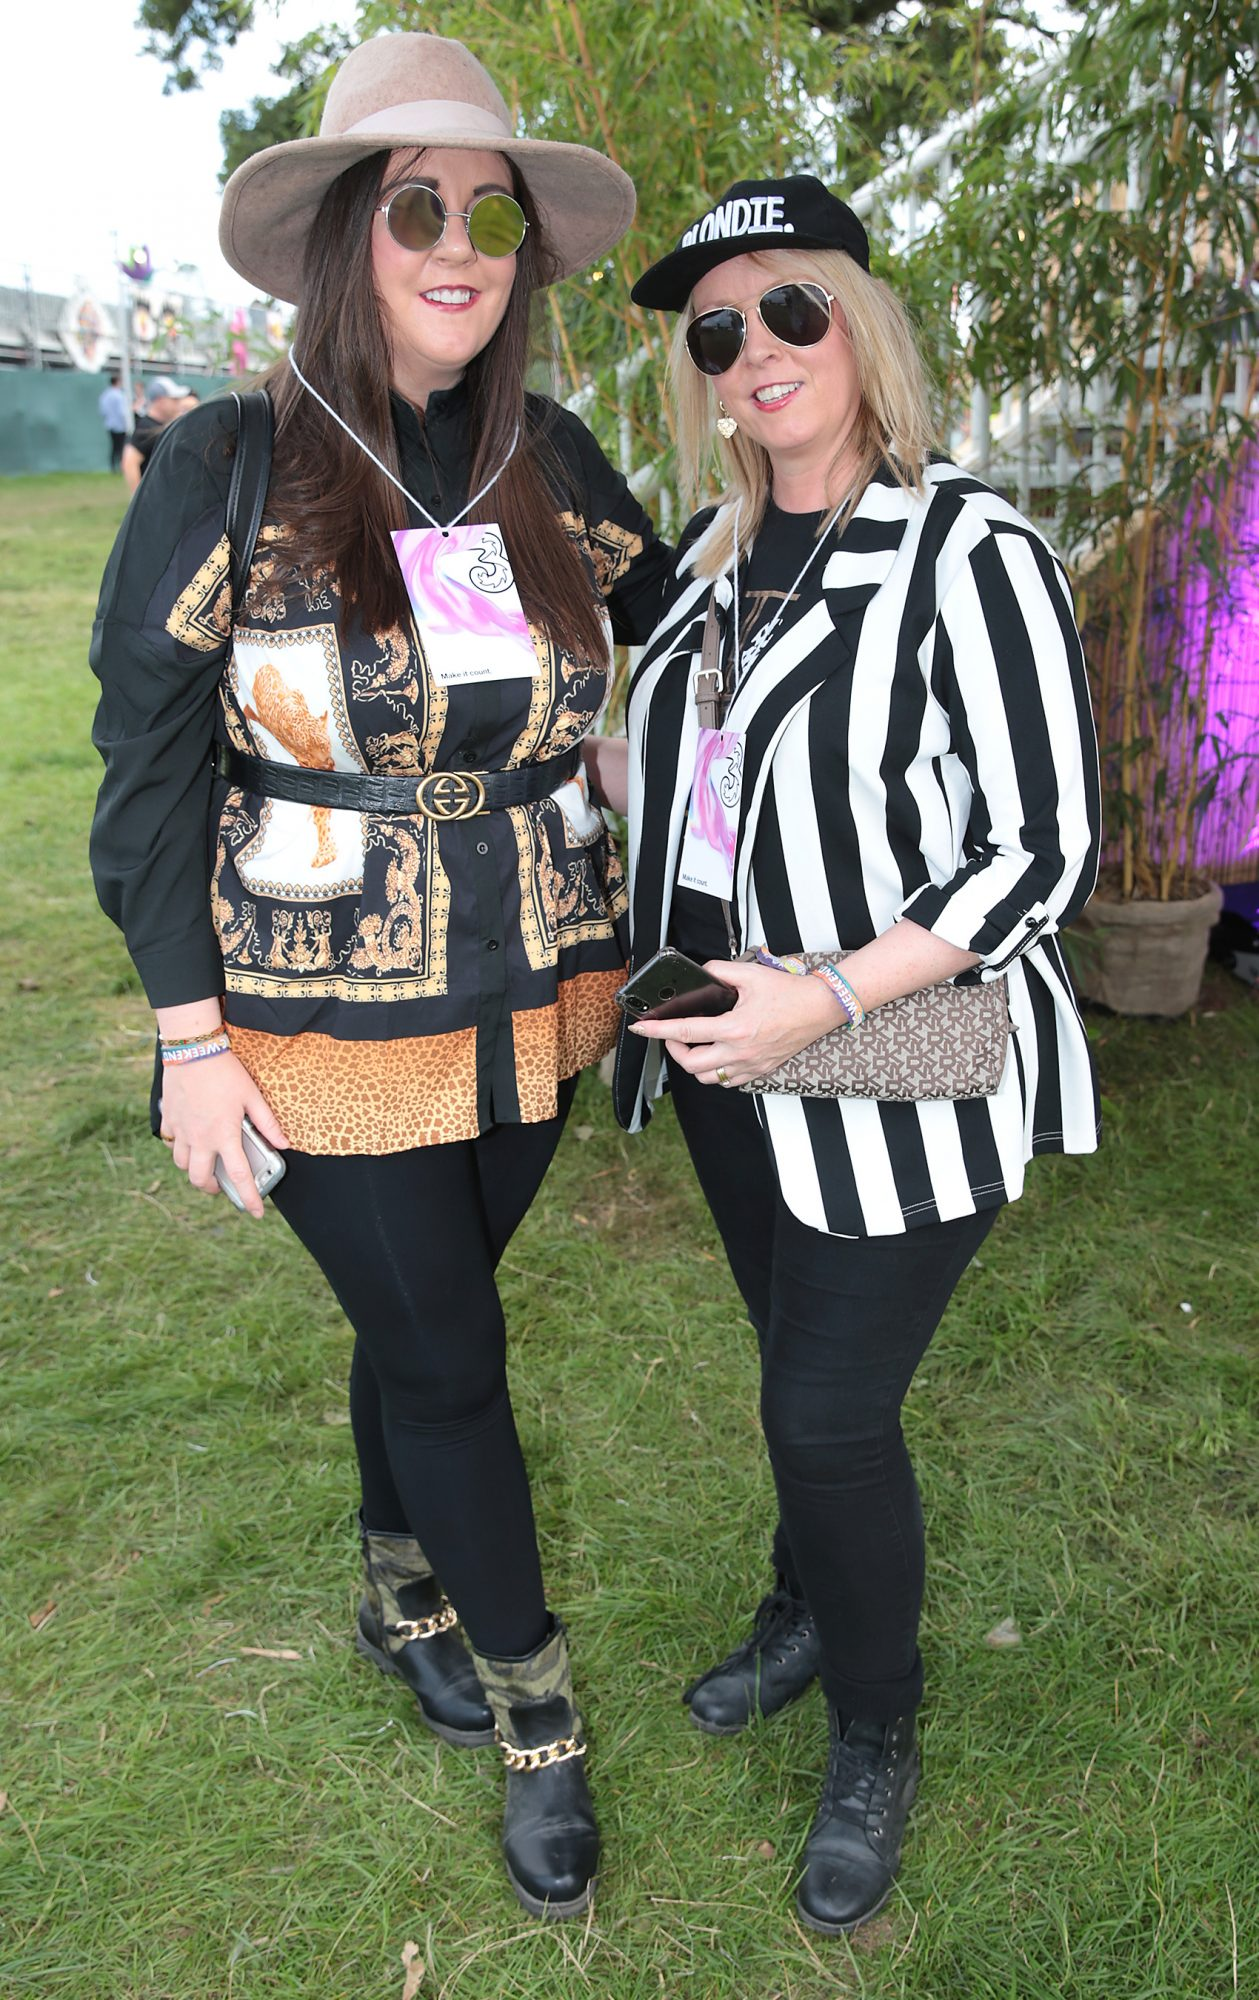 Carol Keogh and Martina Walsh at Three's Charge & Chill at Electric Picnic at Stradbally, Co. Laois. 